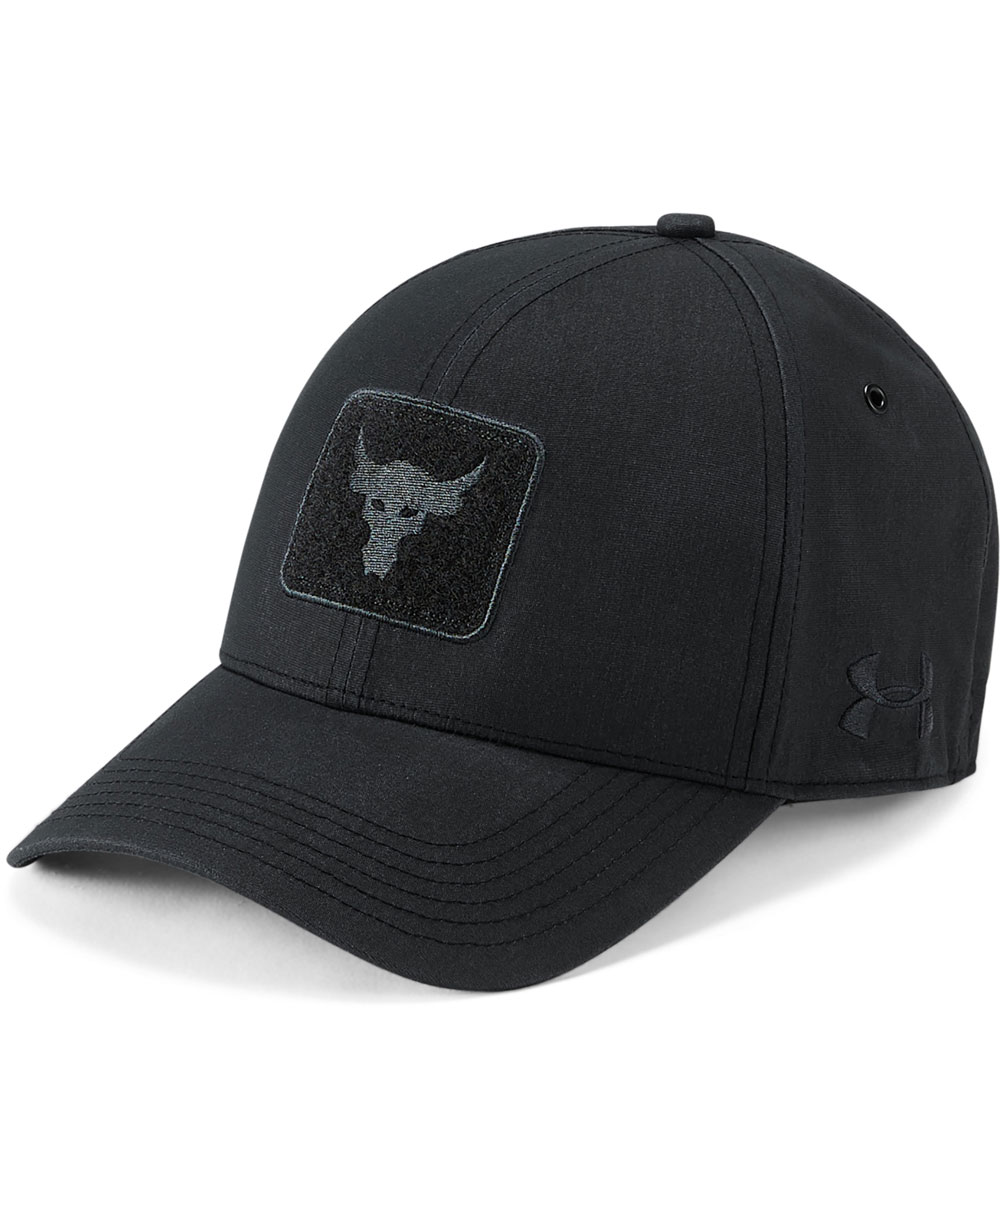 bf0ad427 Under Armour Men's Cap Project Rock Pro Series Black